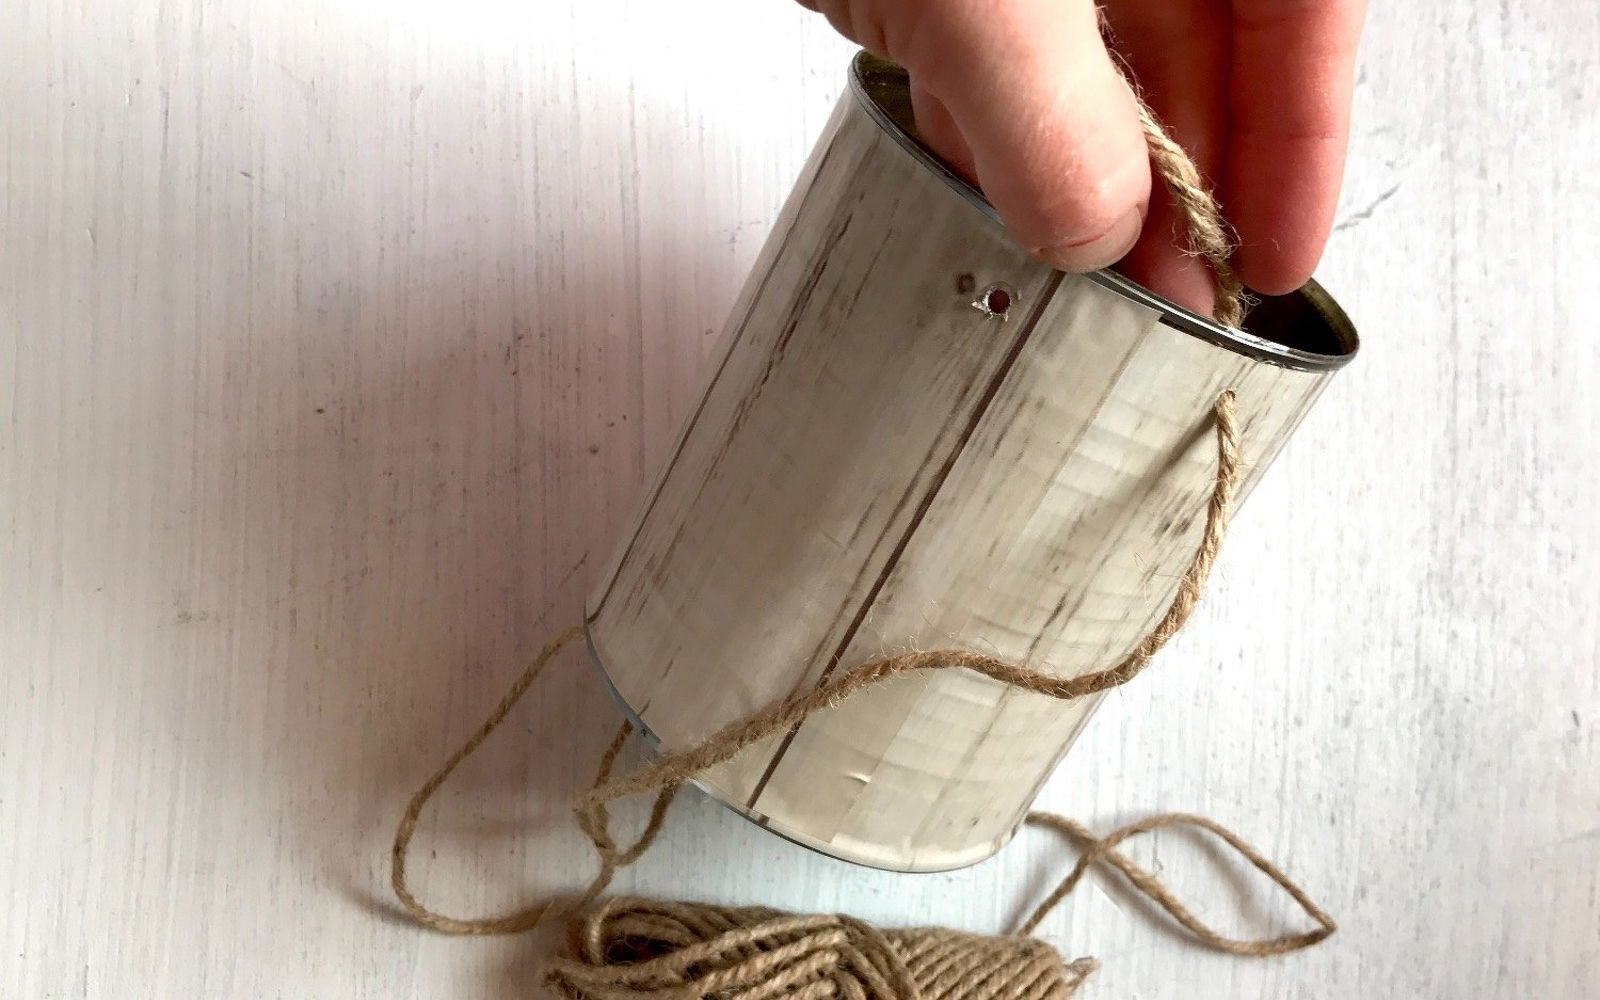 s transform tuna cans into gorgeous lighting in 9 simple steps, Step 5 Thread twine through the holes